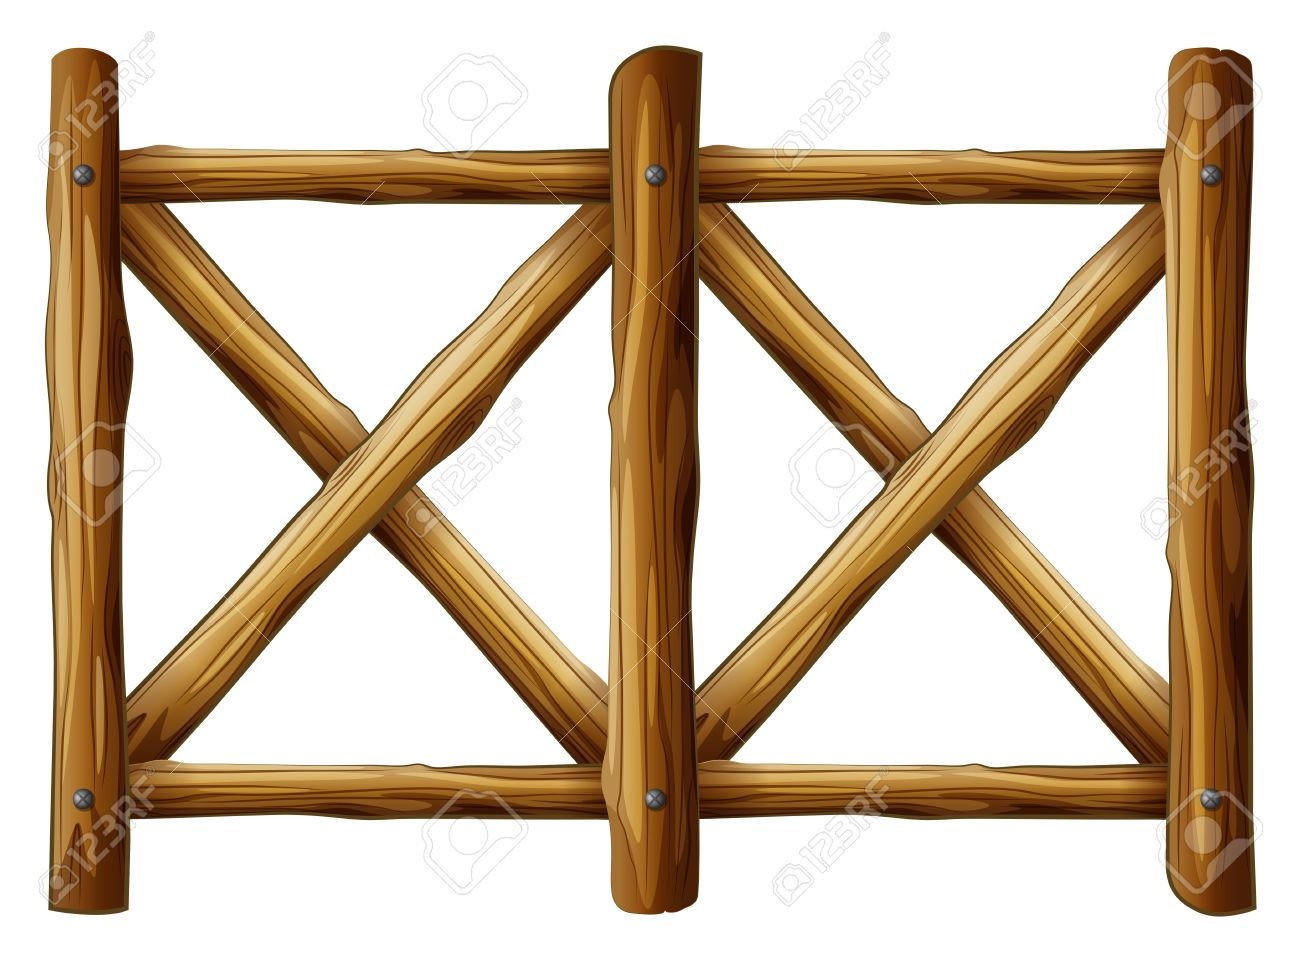 Illustration Of A Wooden Fence Design On A White Background Royalty ...